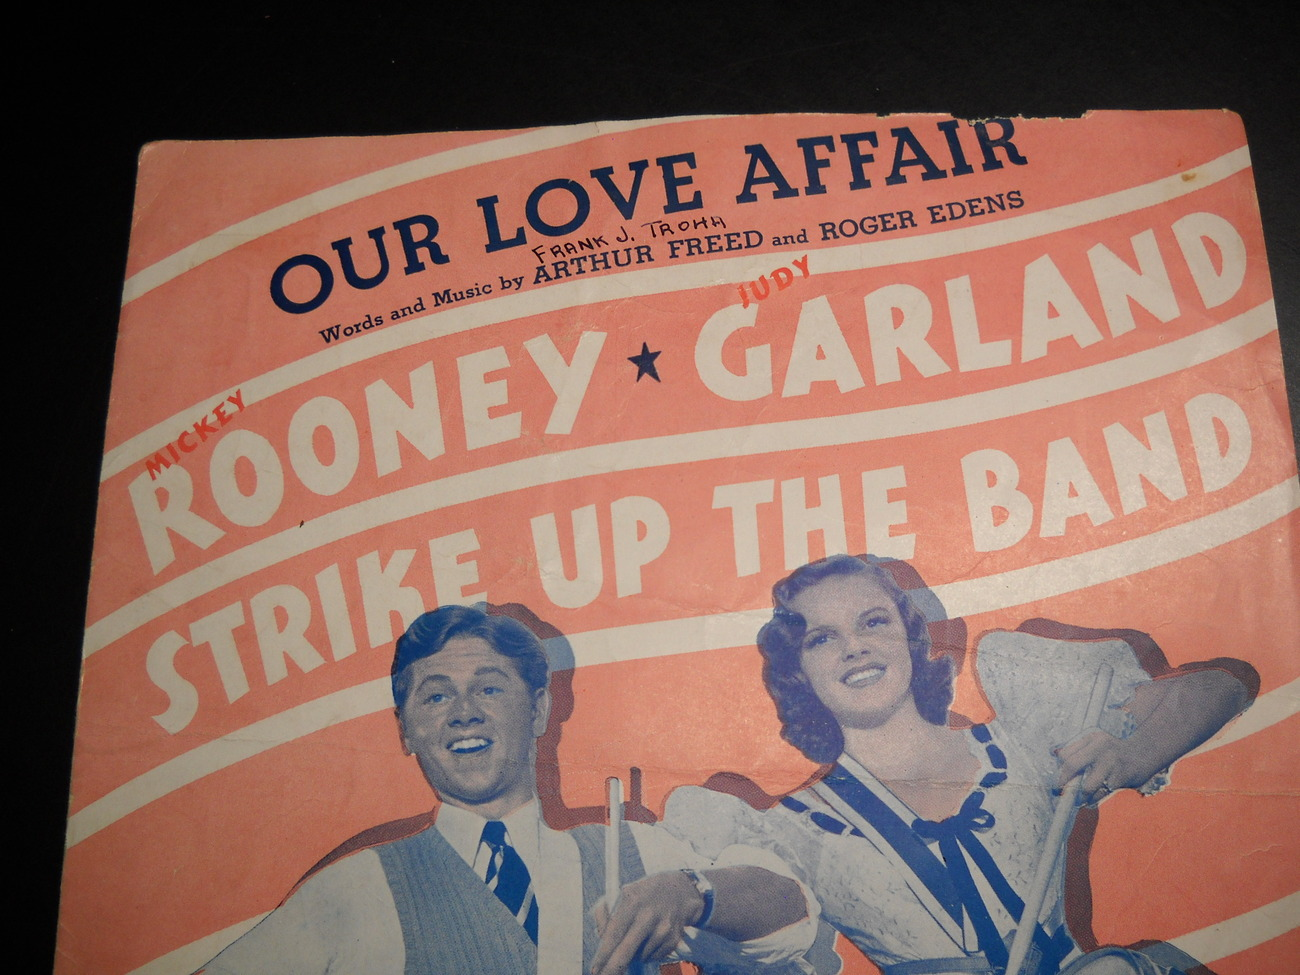 Sheet_music_our_love_affair_from_strike_up_the_band_judy_garland_mickey_rooney__09